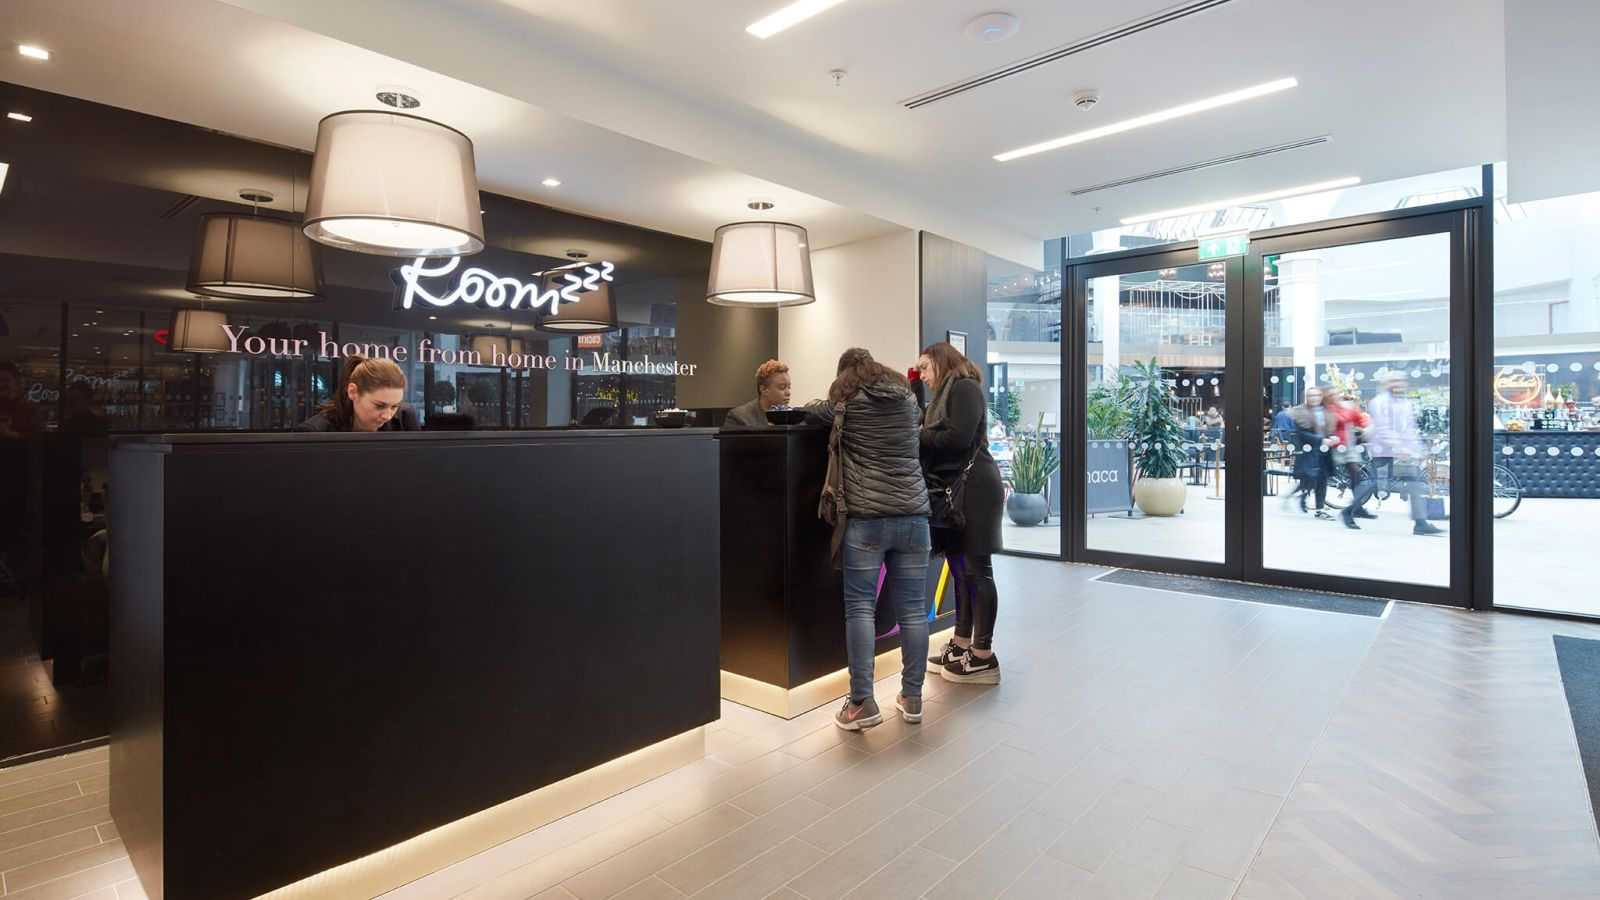 IconInc @ Roomzzz 24 hour reception desk. Student Accommodation in Manchester